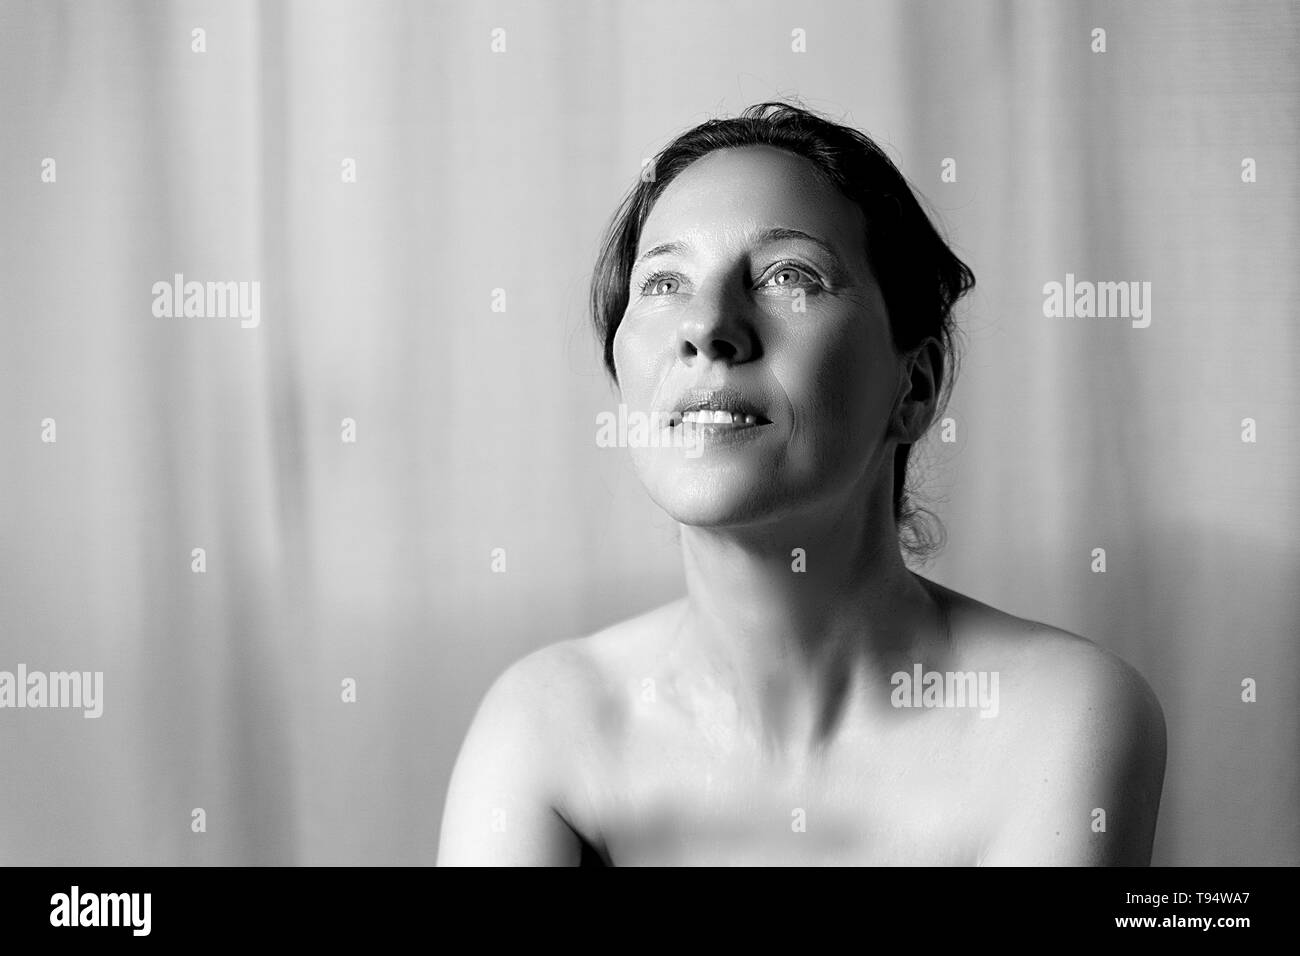 mature woman - Stock Image